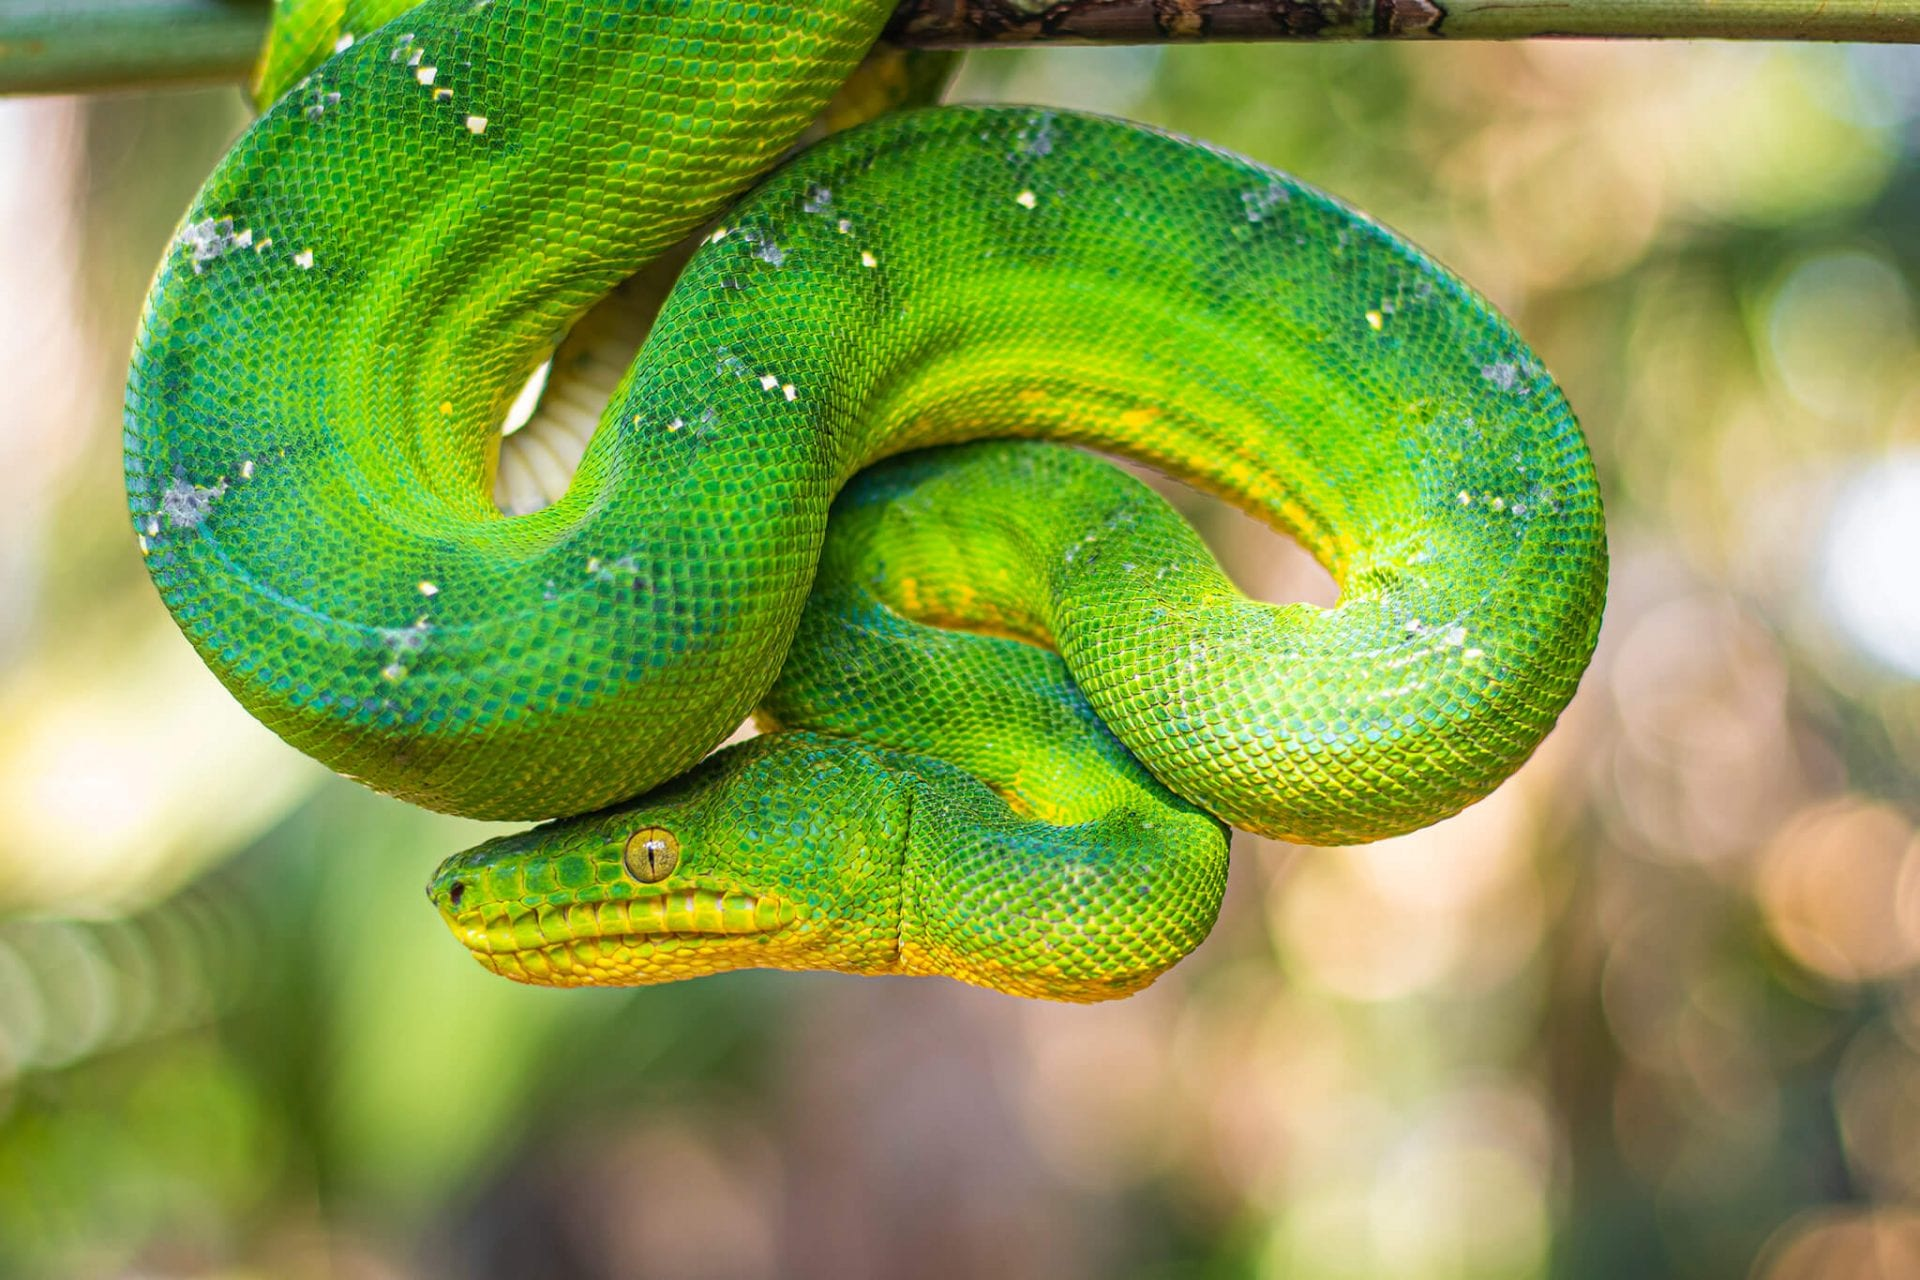 Emerald tree boa coiled